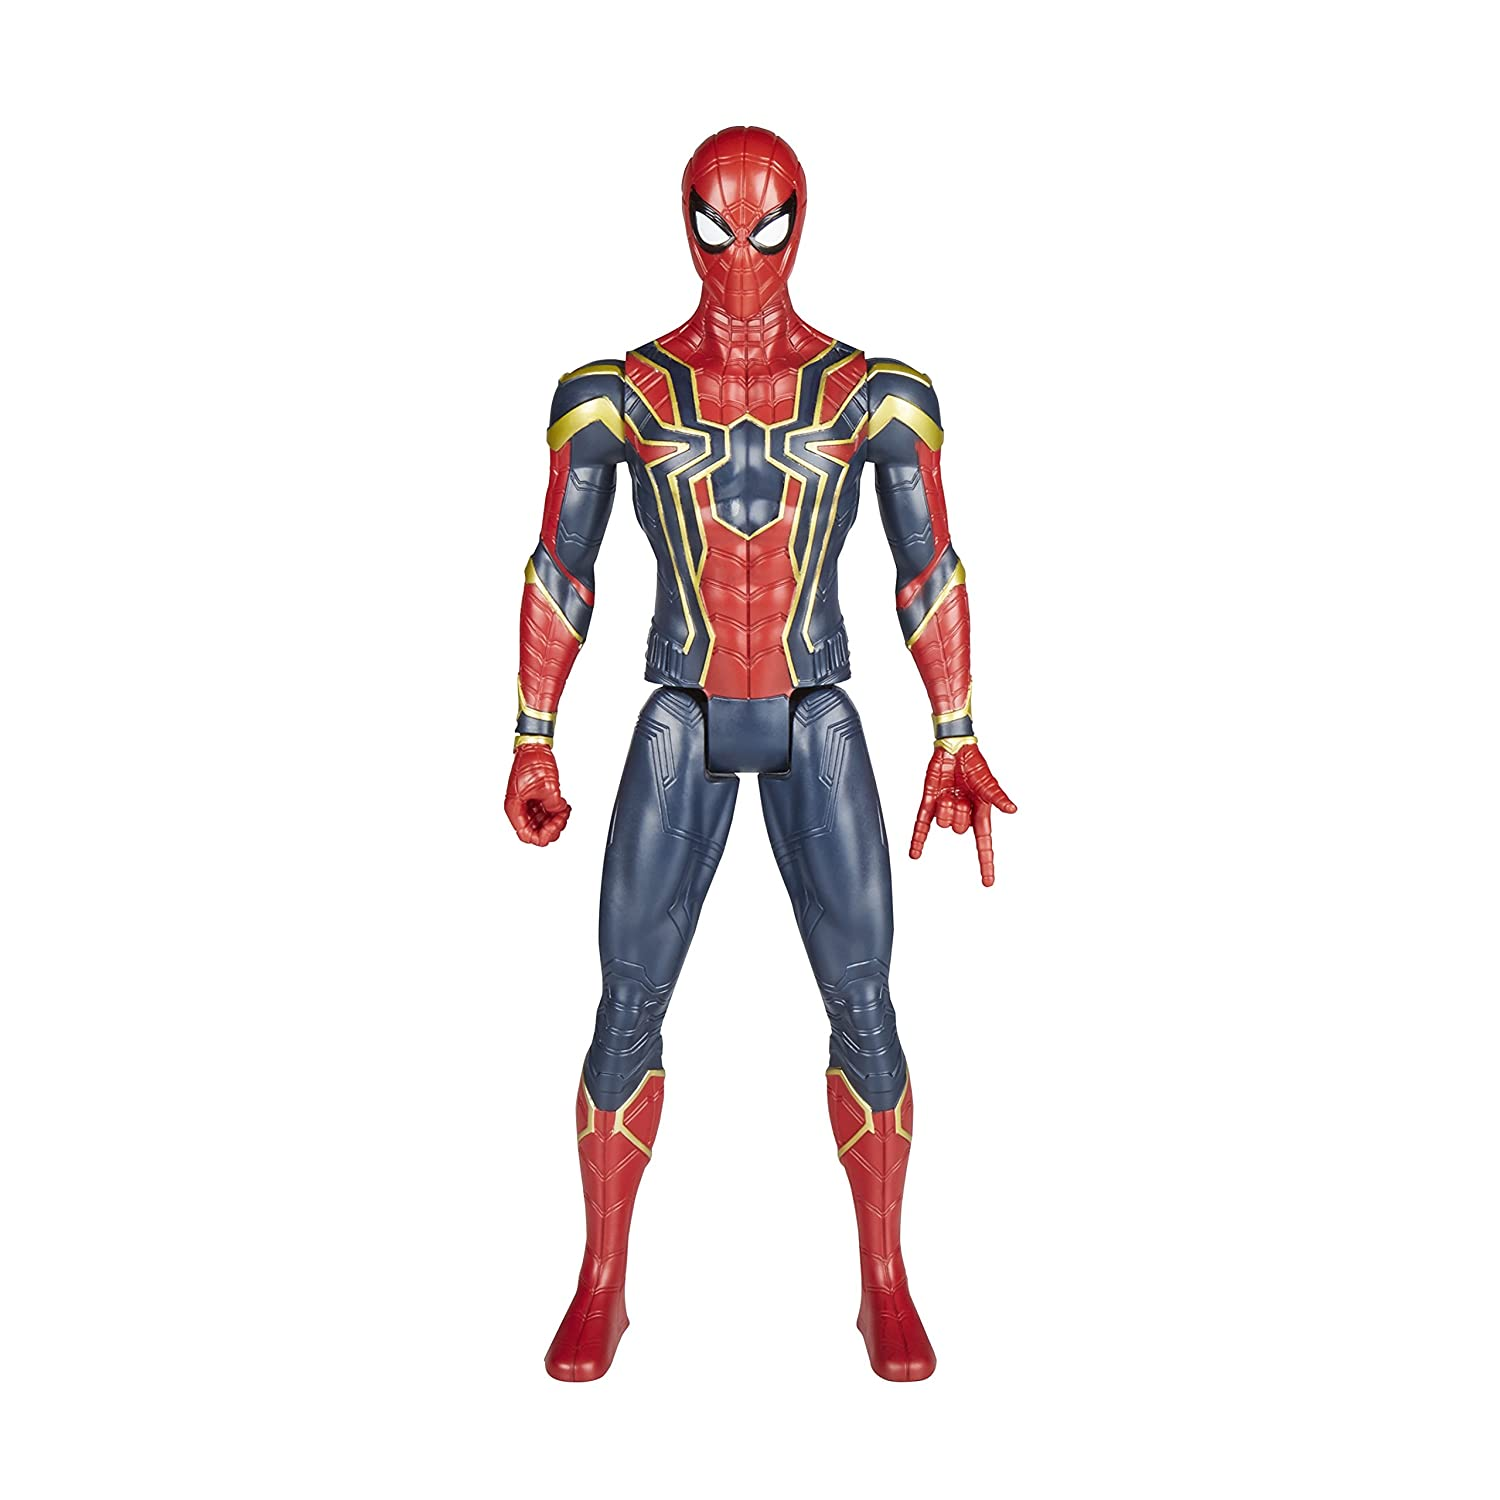 The Avengers AVENGERS Marvel Infinity War Titan Hero Power FX Iron Spider Figure Hasbro E0608102